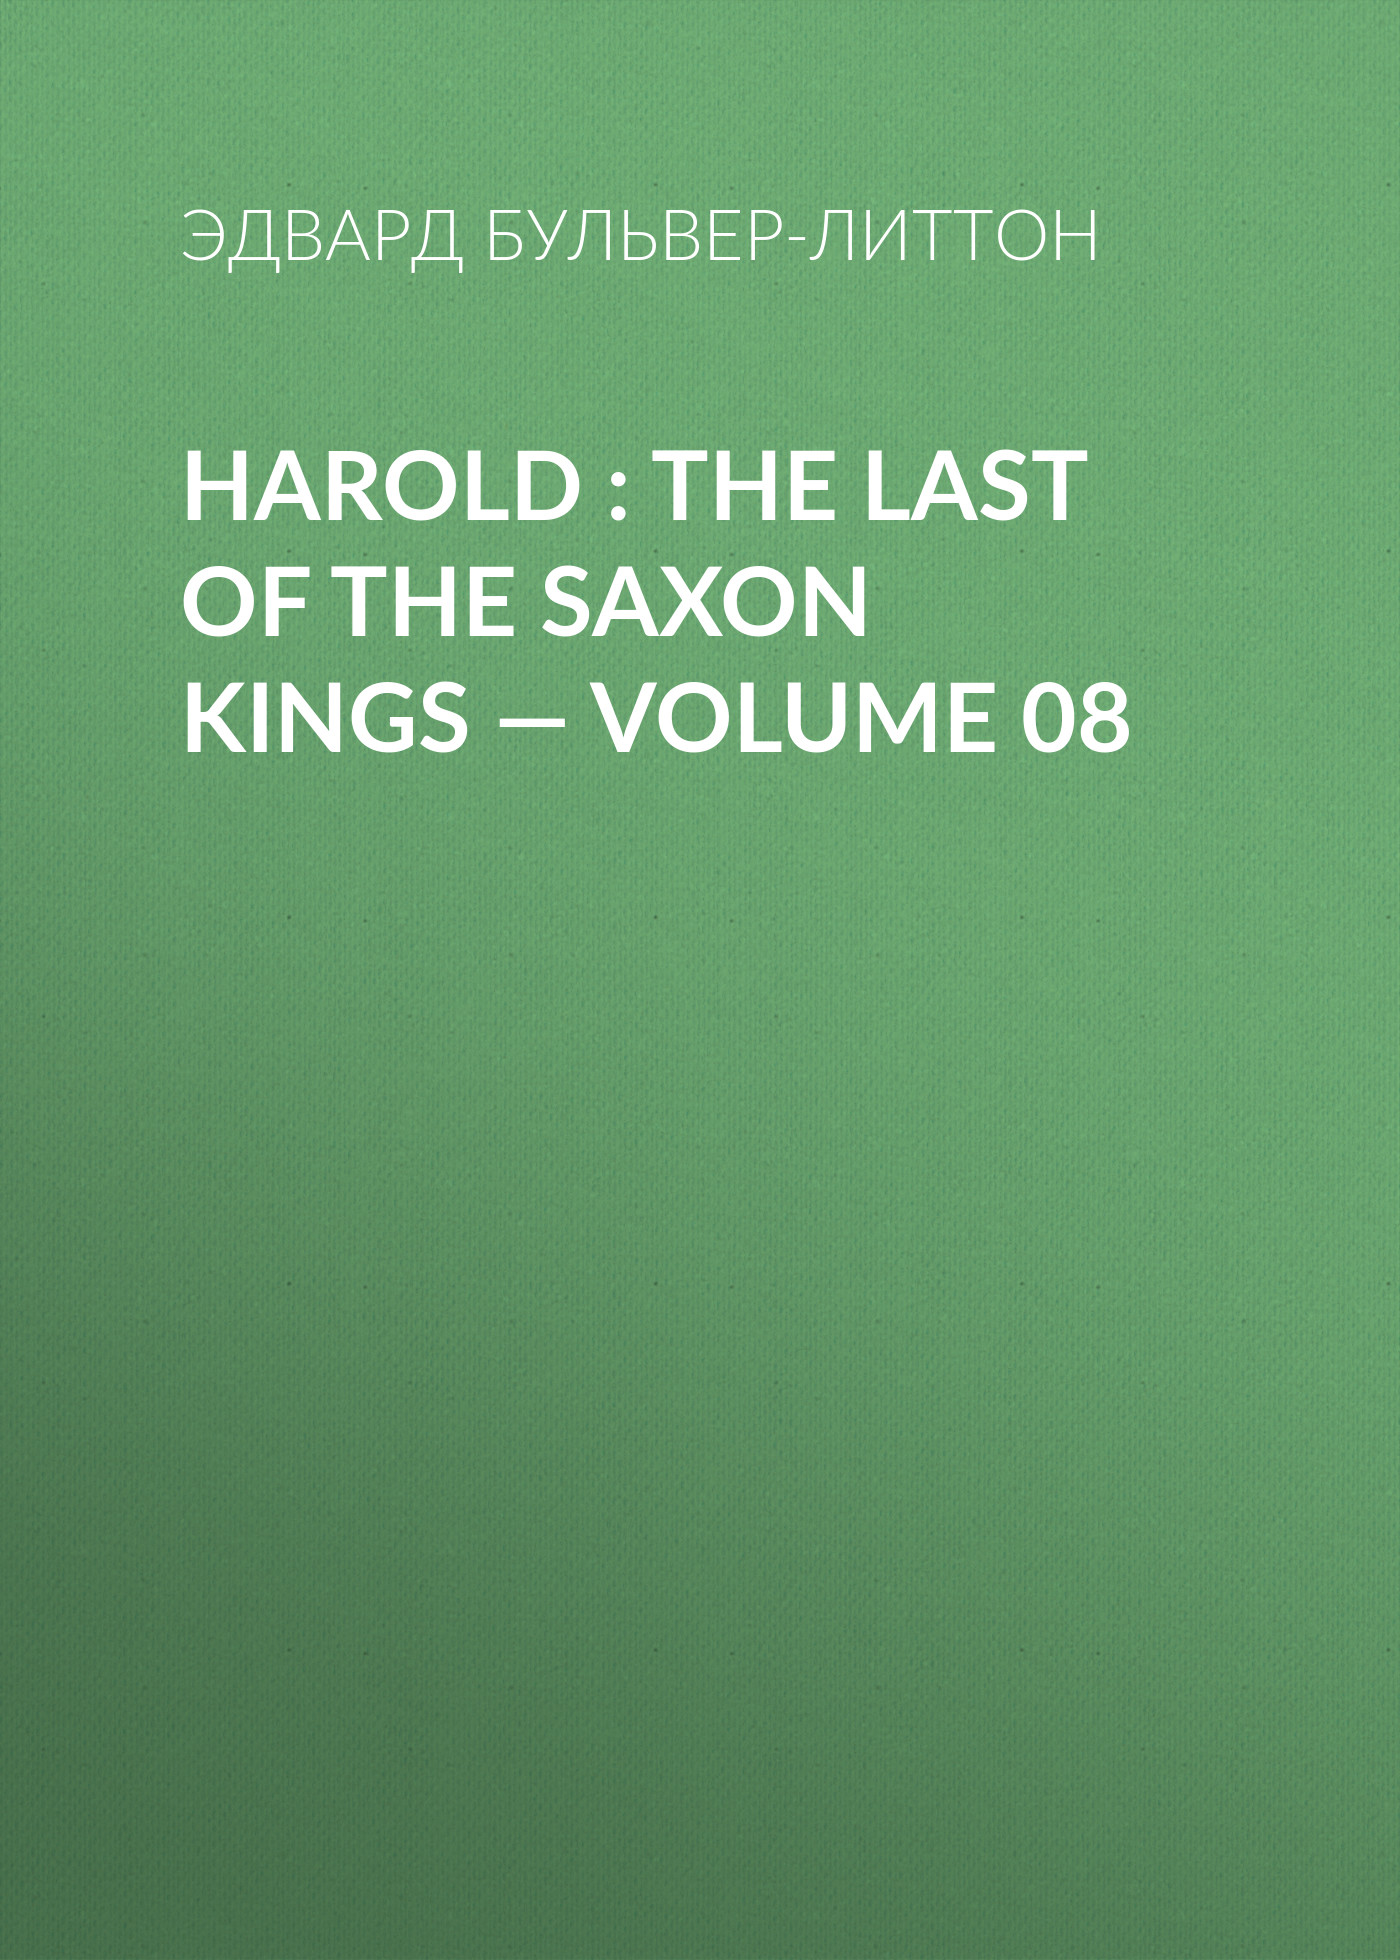 Эдвард Бульвер-Литтон Harold : the Last of the Saxon Kings — Volume 08 эдвард бульвер литтон harold the last of the saxon kings volume 10